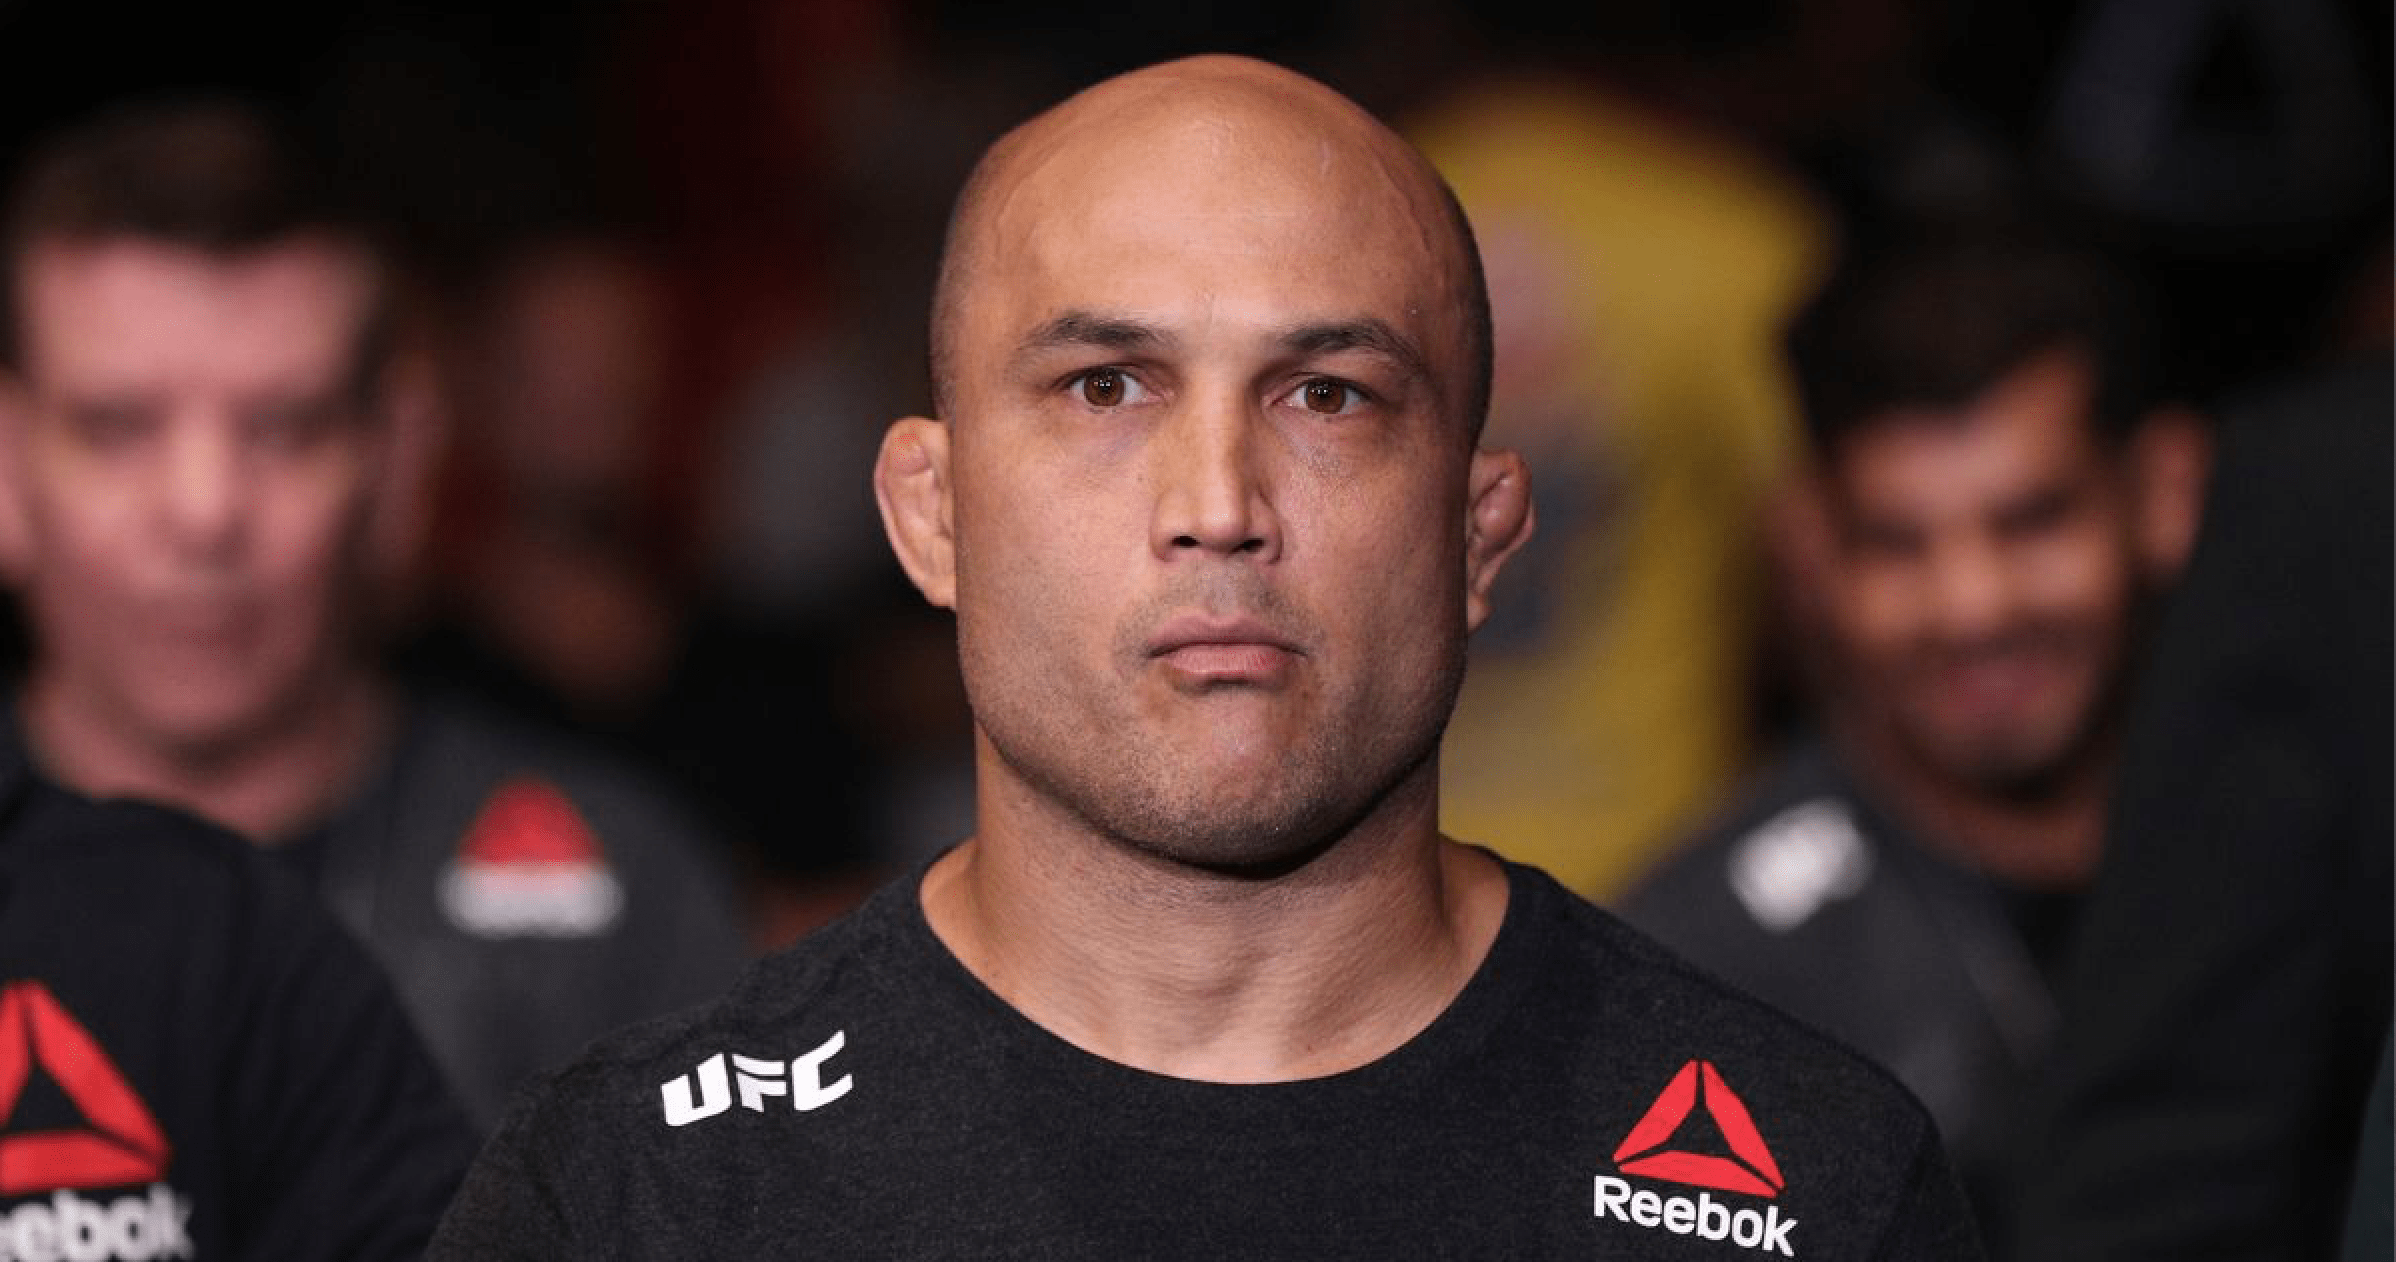 UFC: Is BJ Penn Ready To Hang Up His Gloves For Good?